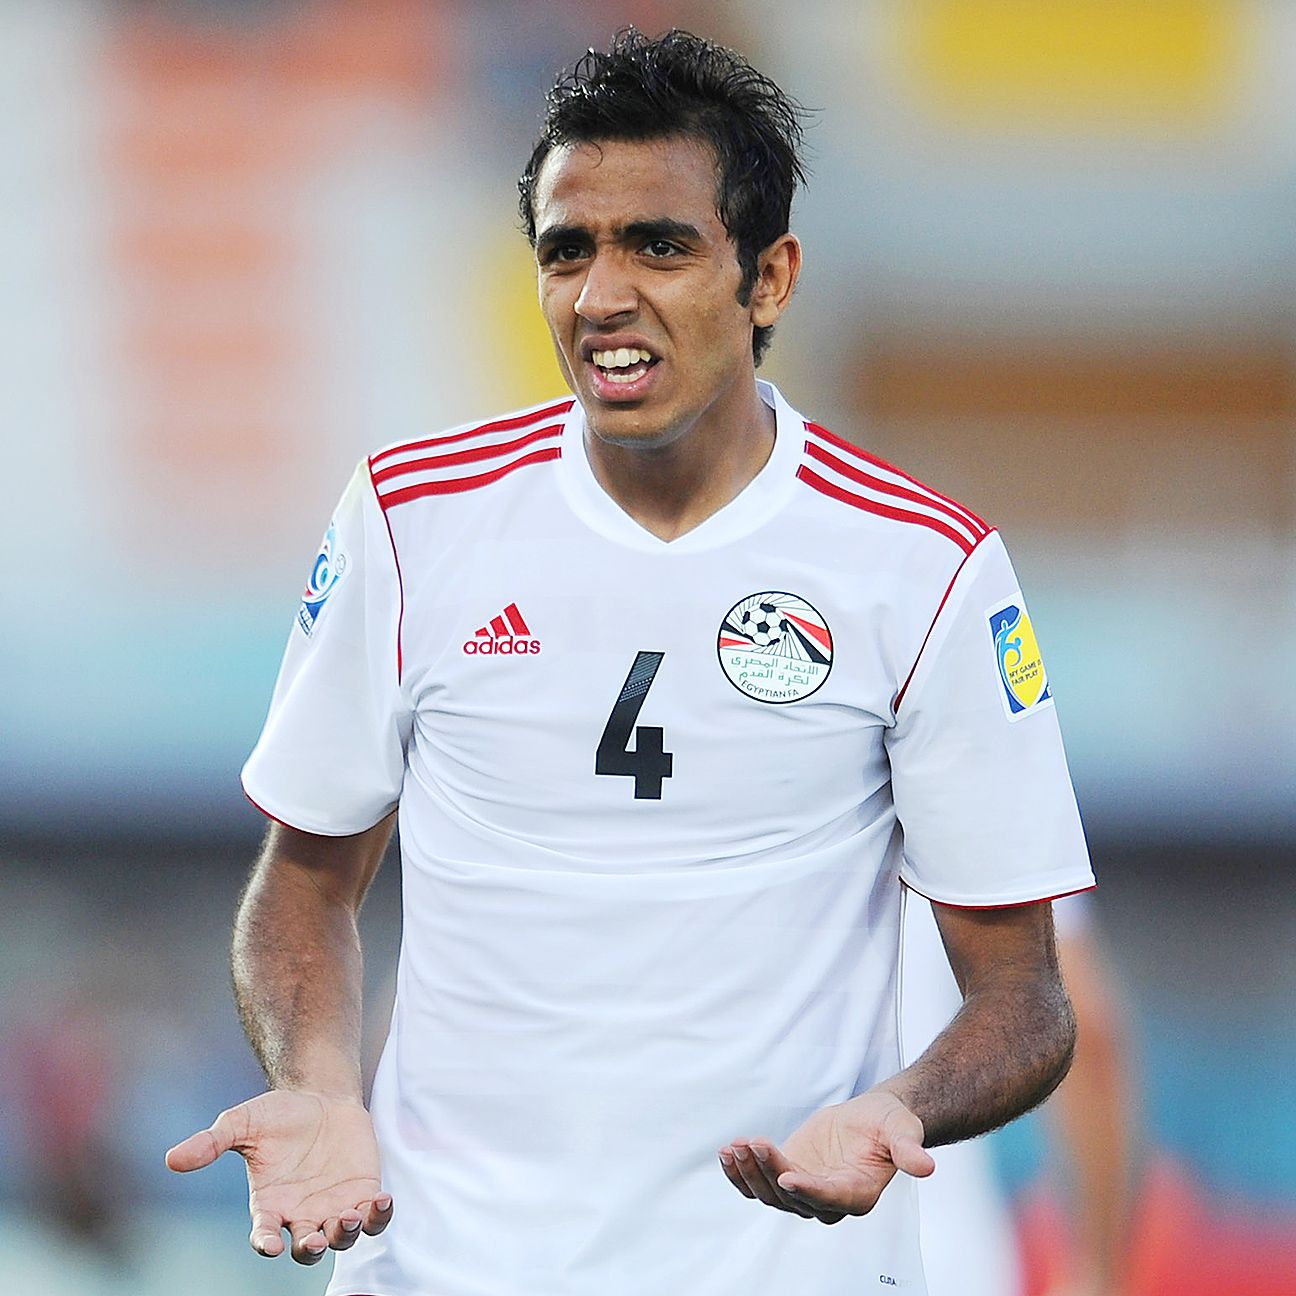 Mahmoud Kahraba scored a brace in Egypt's 4-0 win over Uganda in CAF Under-23 Championship qualifying.